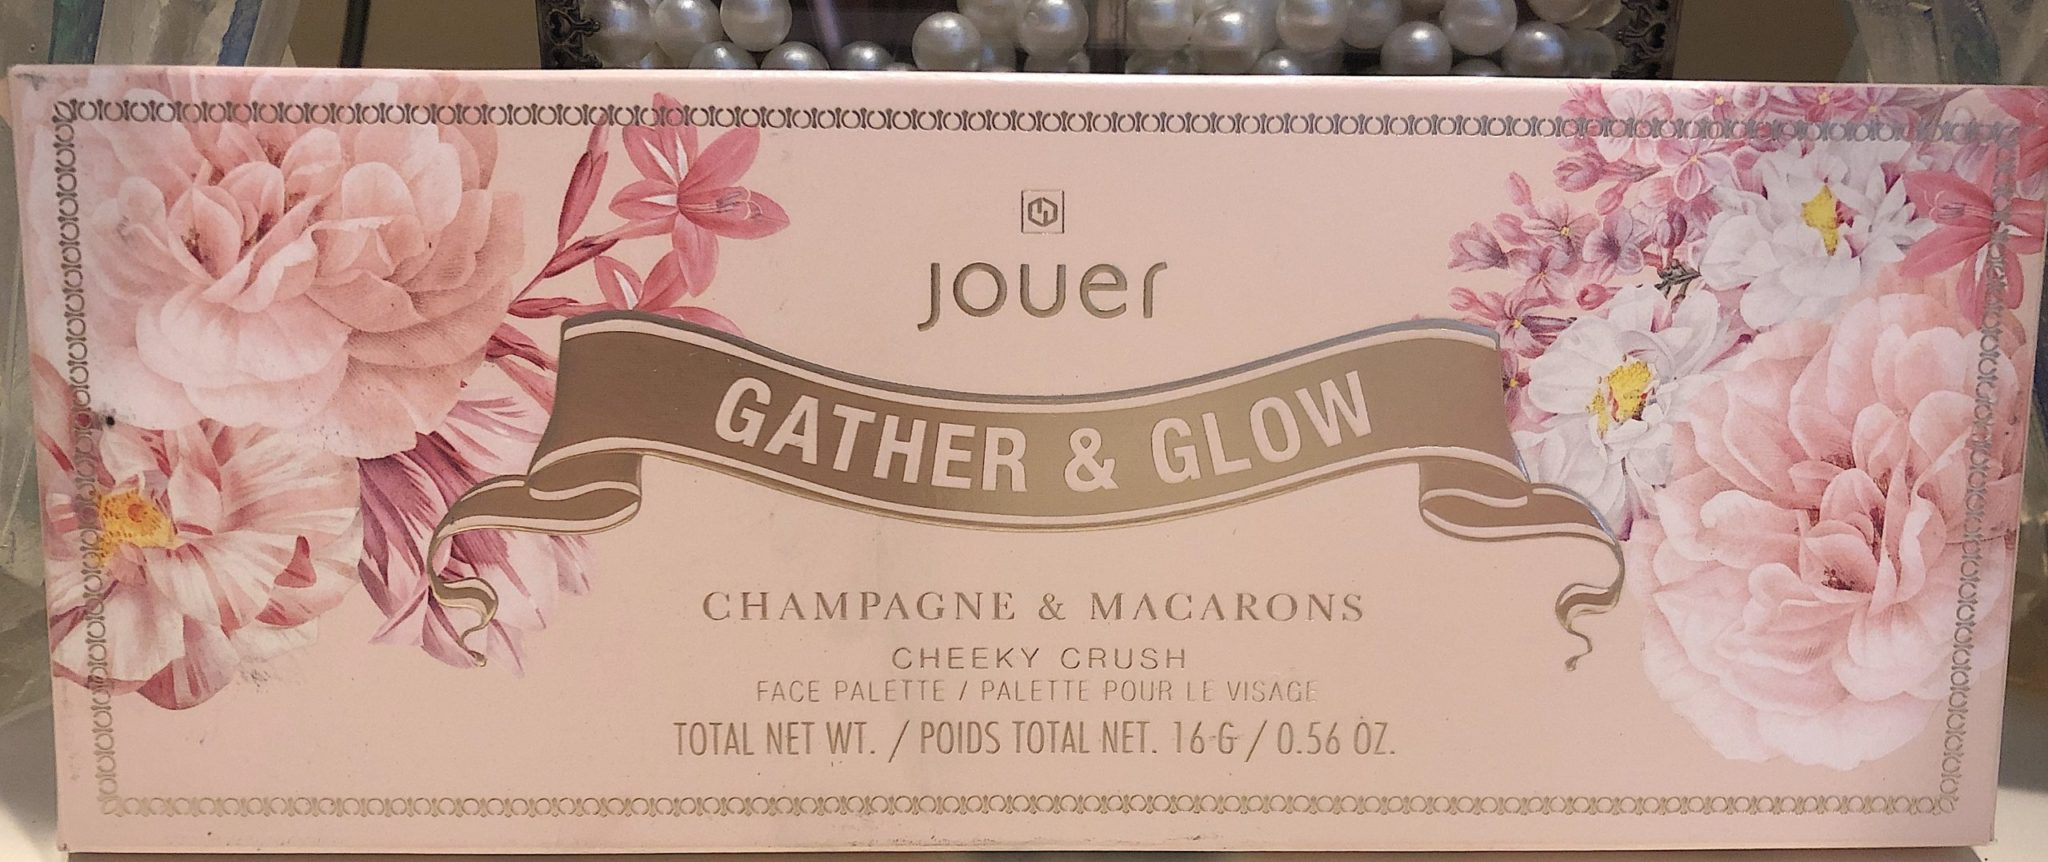 THE OUTER BOX FOR THE JOUER CHAMPAGNE & MACARONS FACE PALETTE